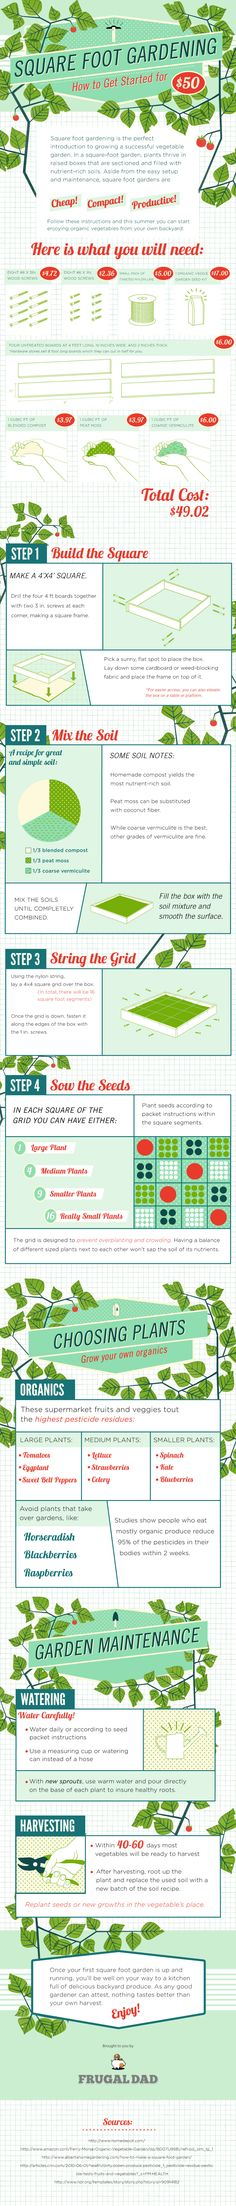 Great overview of square foot gardening